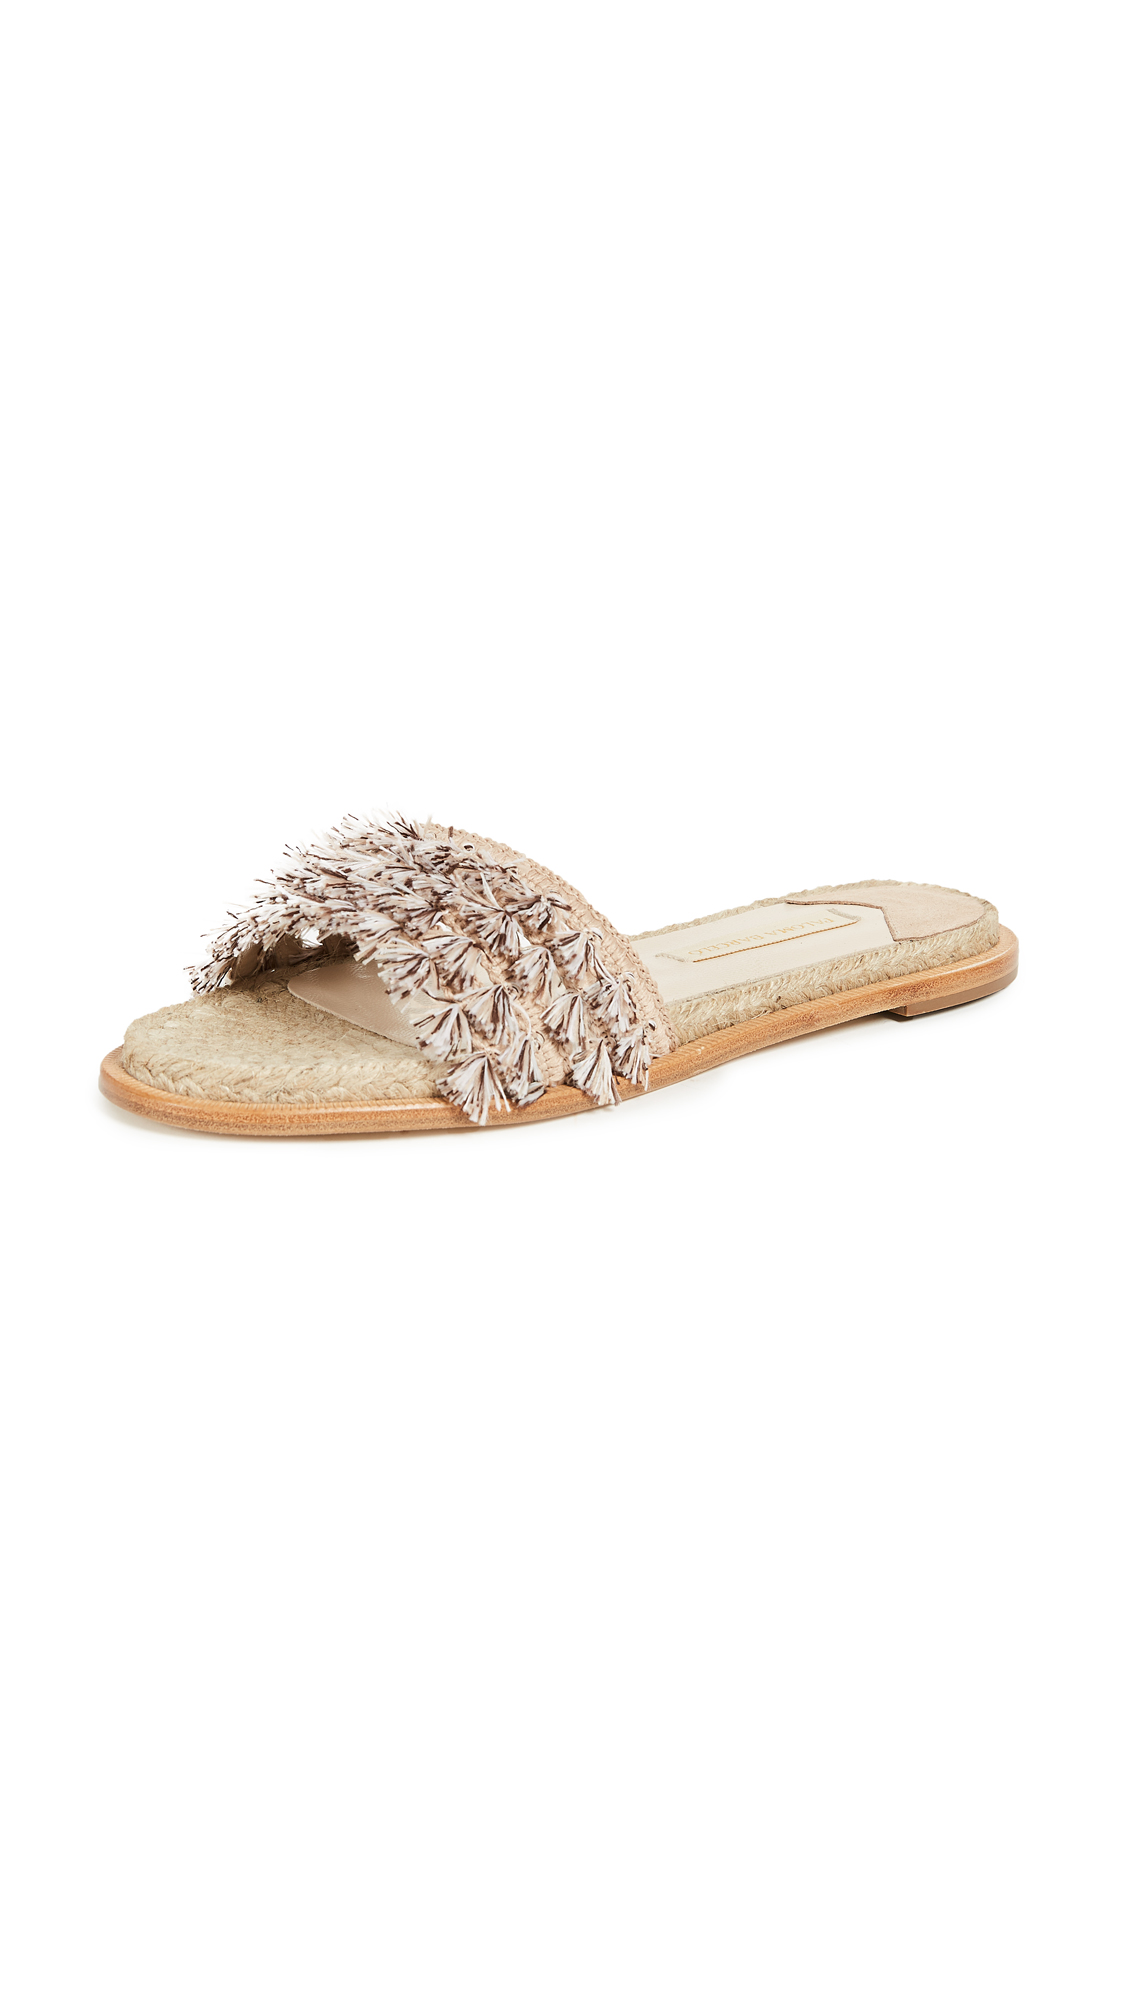 Paloma Barcelo Laurina Slides - Taupe